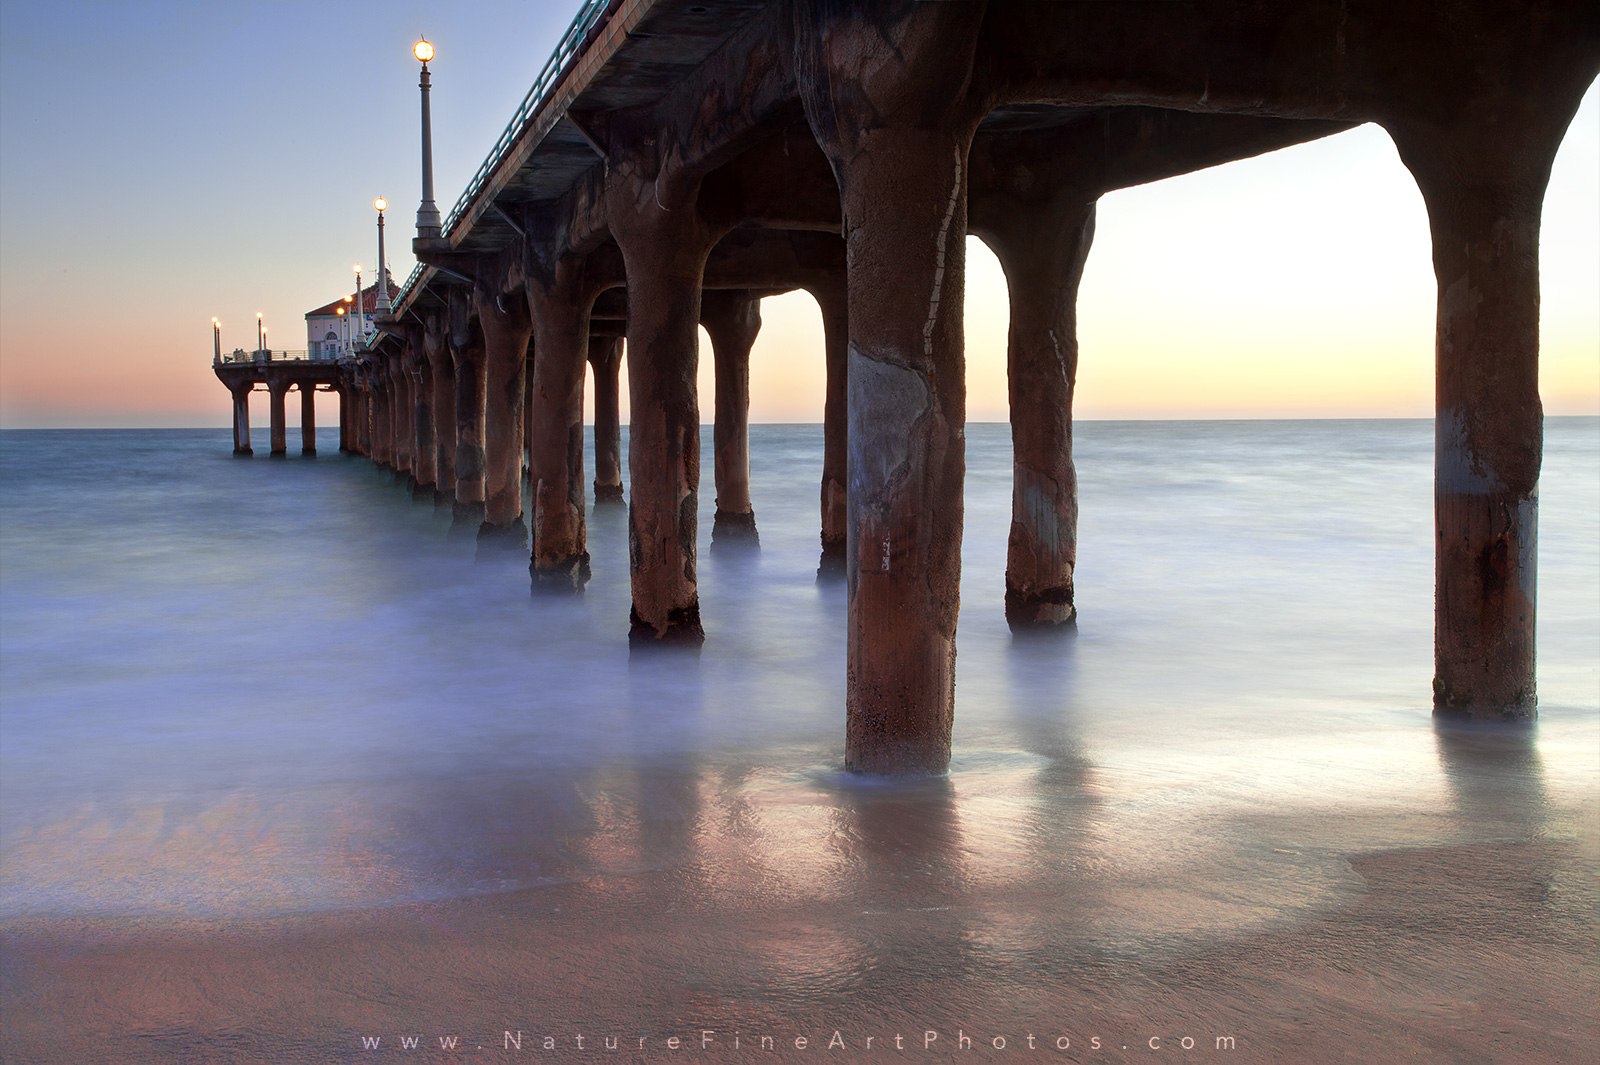 Sunset Photo of Manhattan Beach Pier